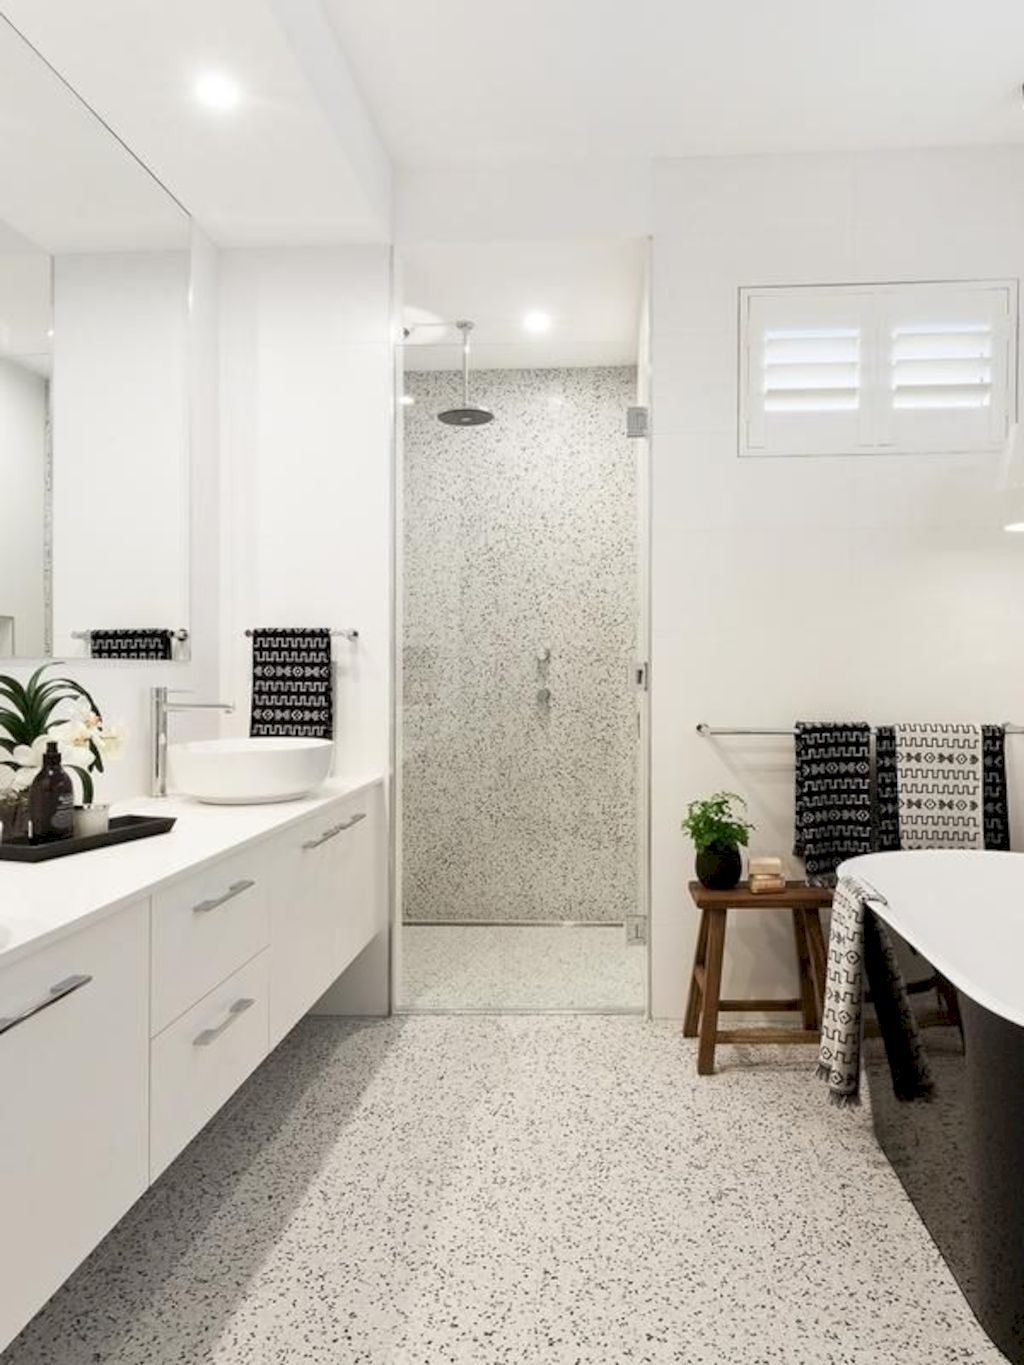 Creative bathroom updates mixing modern trend with simple 60s terrazzo style giving a brilliant contemporary balance Image 23